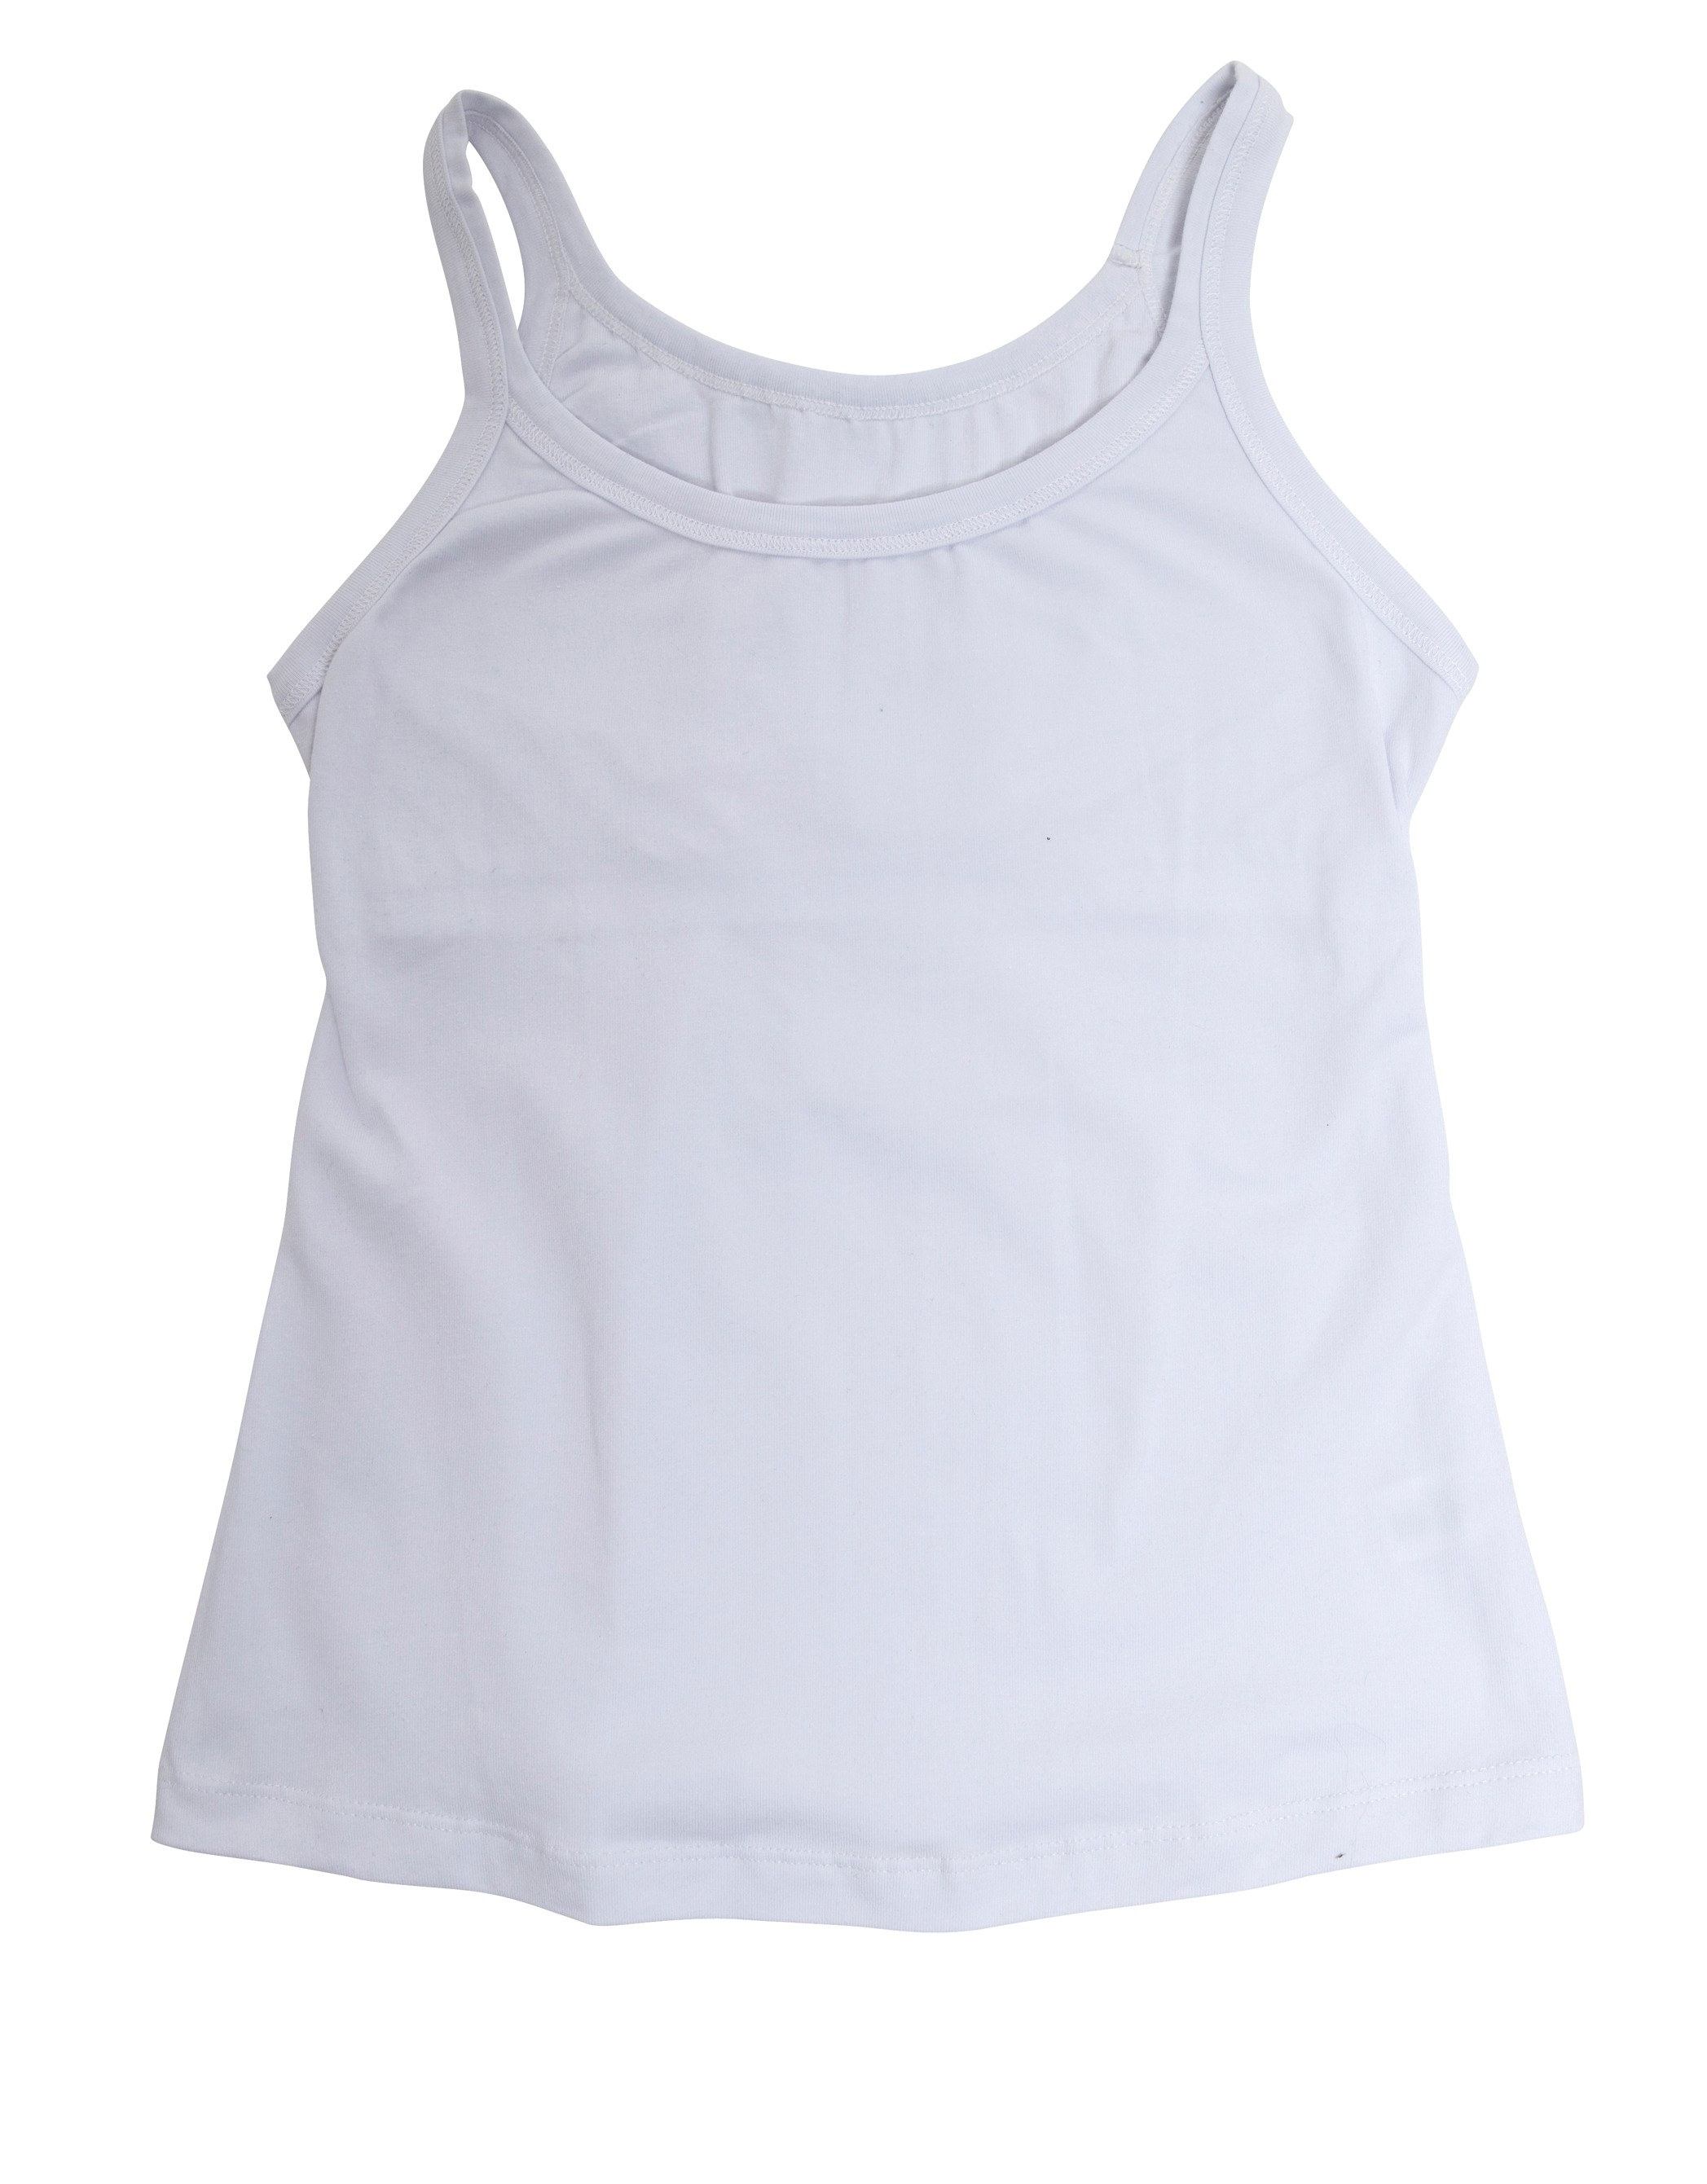 Shelf Bra Camisole Tank